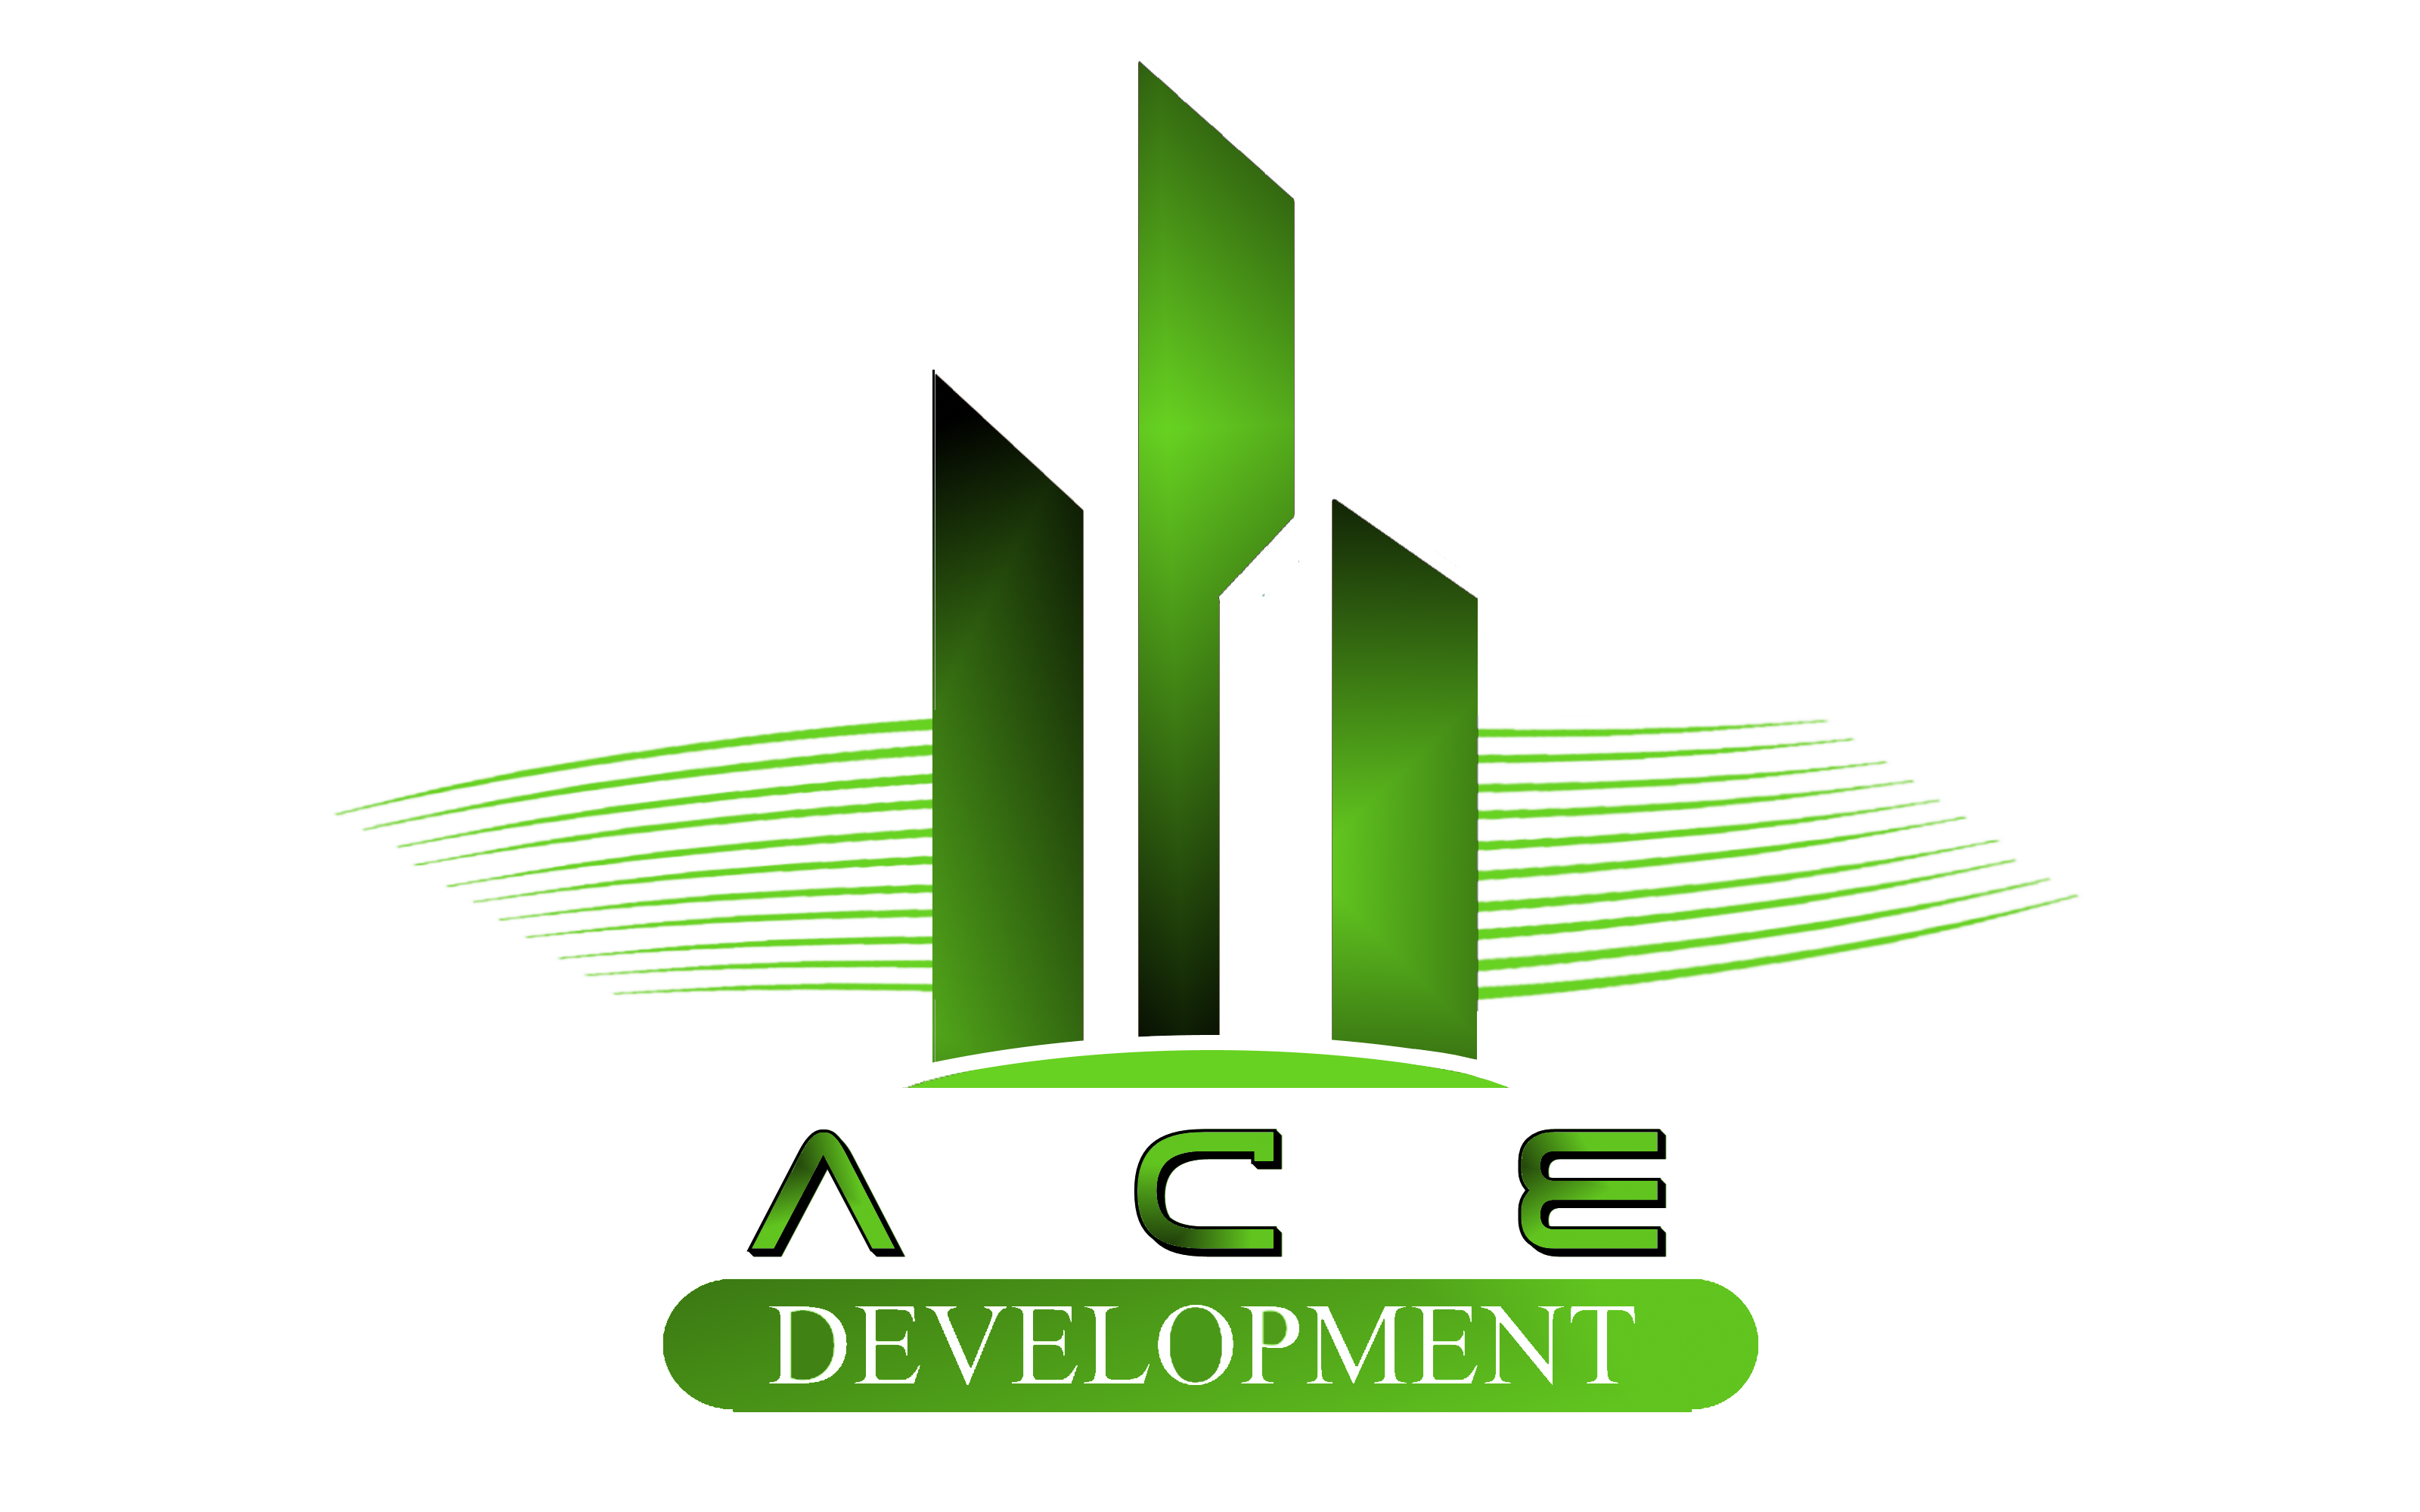 Logo Design by Roberto Bassi - Entry No. 74 in the Logo Design Contest Fun Logo Design for Ace development.